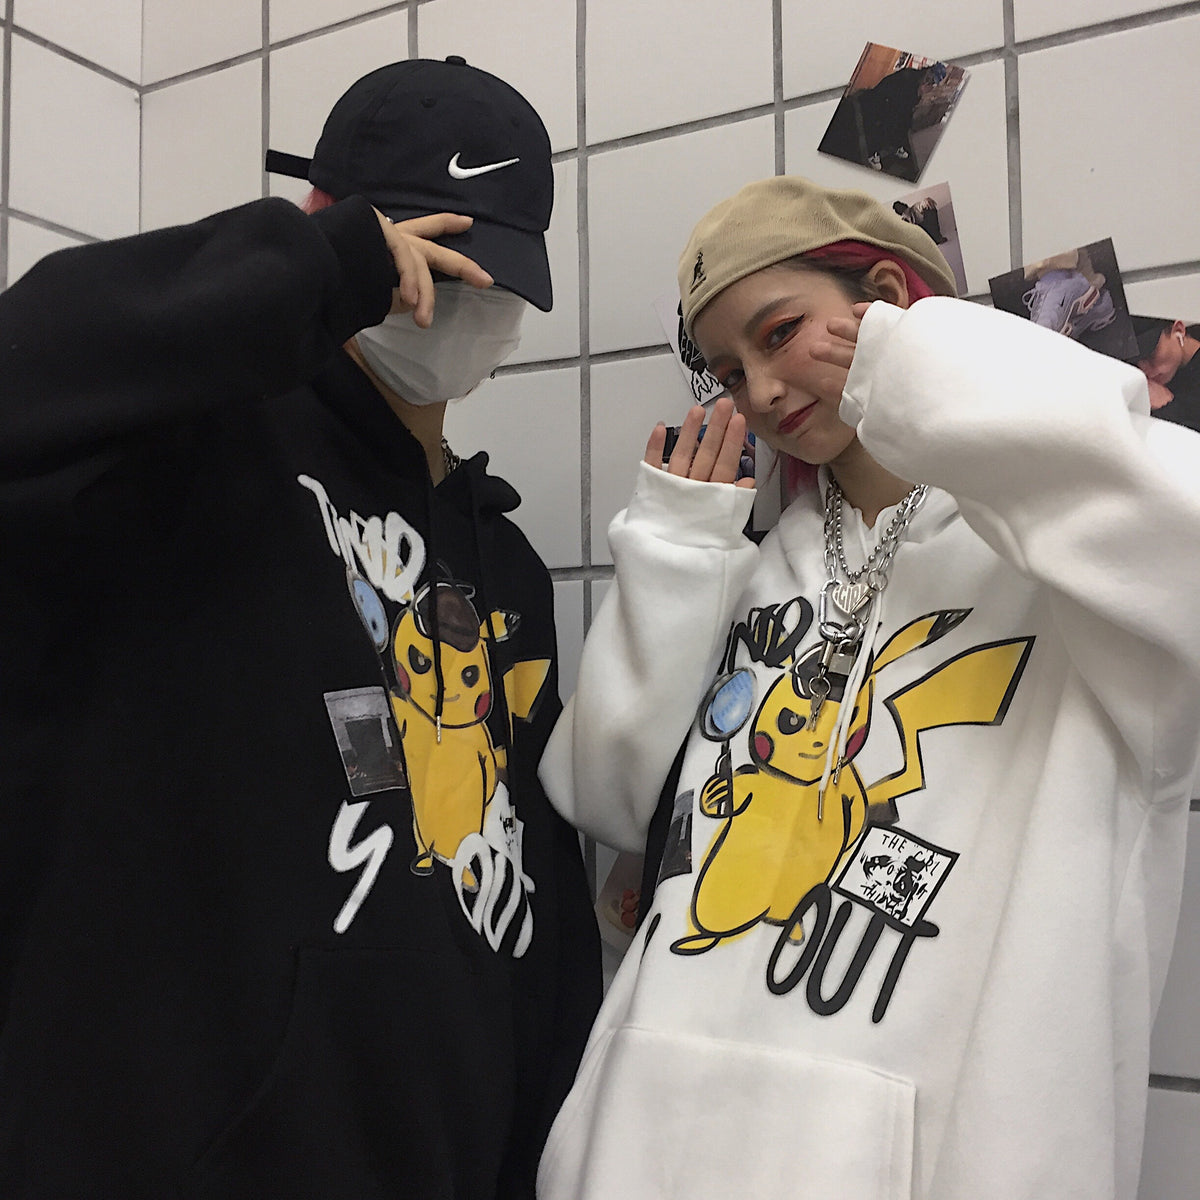 Pikachu cartoon hooded sweater yc22343